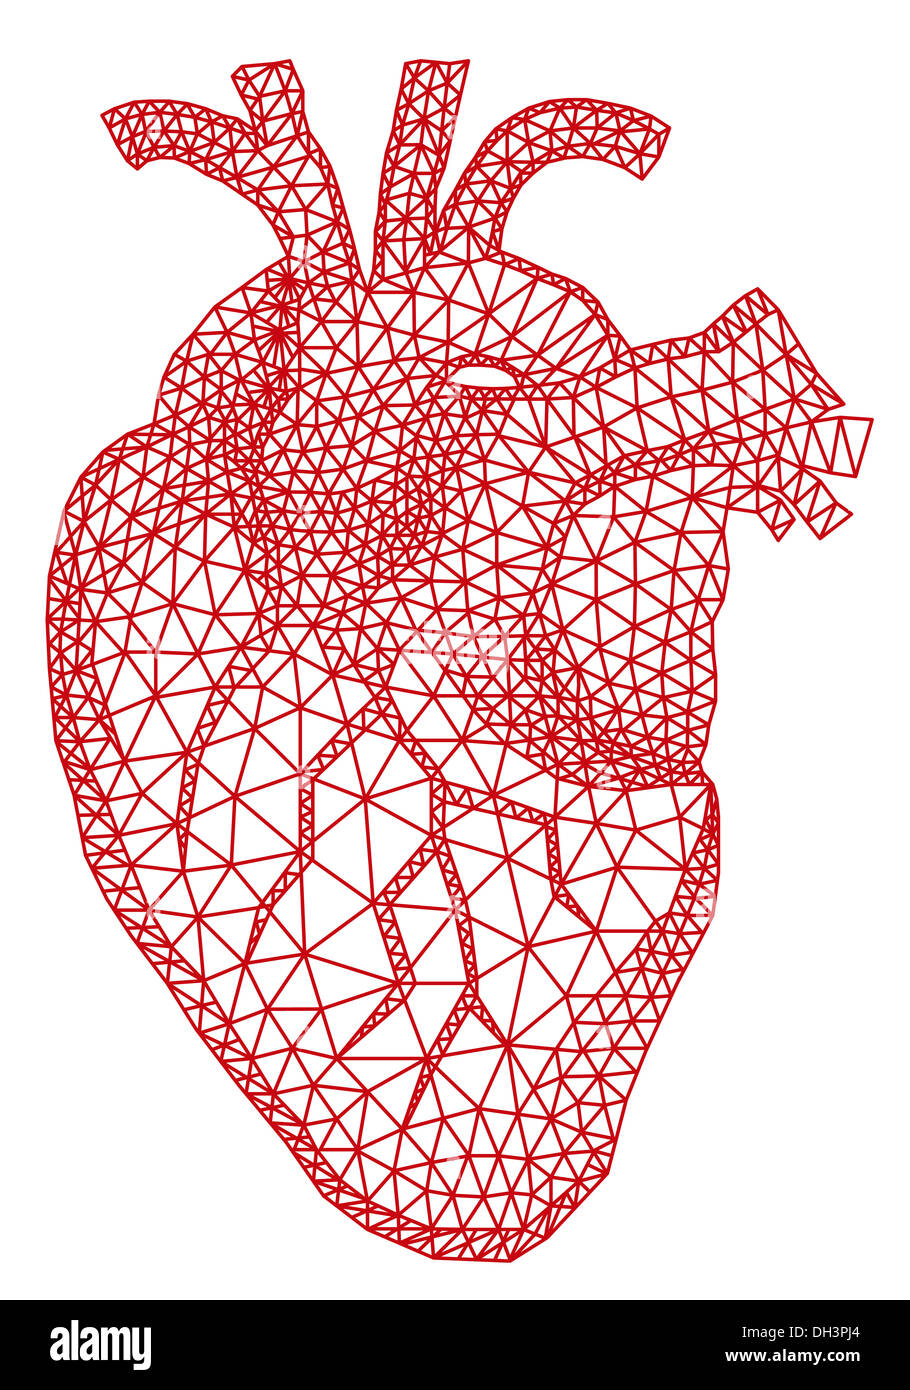 abstract red human heart with geometric mesh pattern - Stock Image